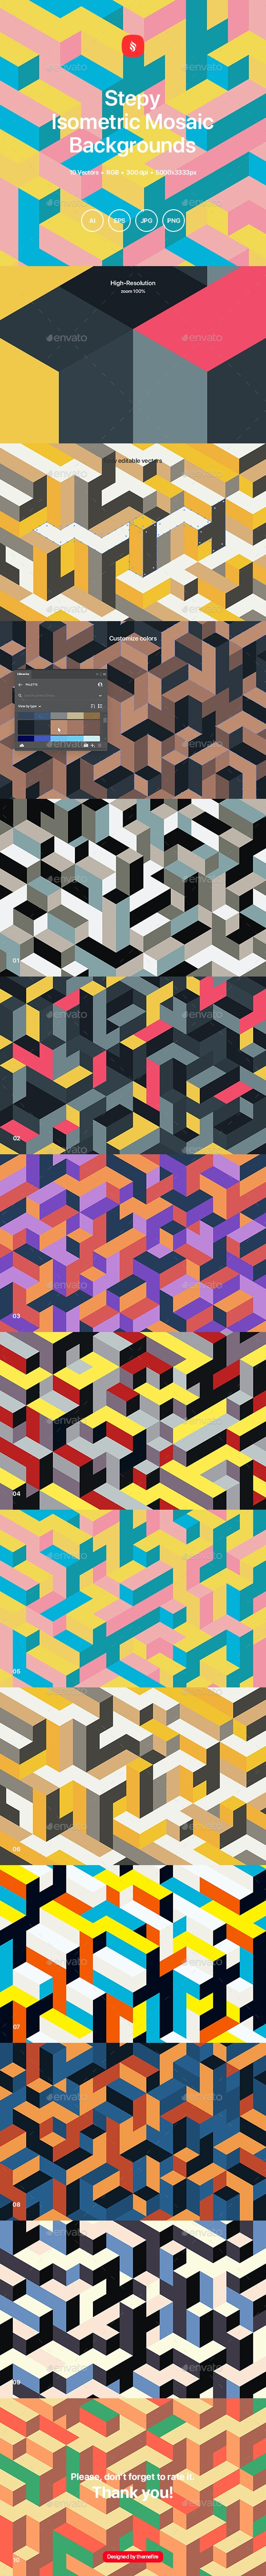 Stepy - Isometric Mosaic Vector Backgrounds - Patterns Backgrounds